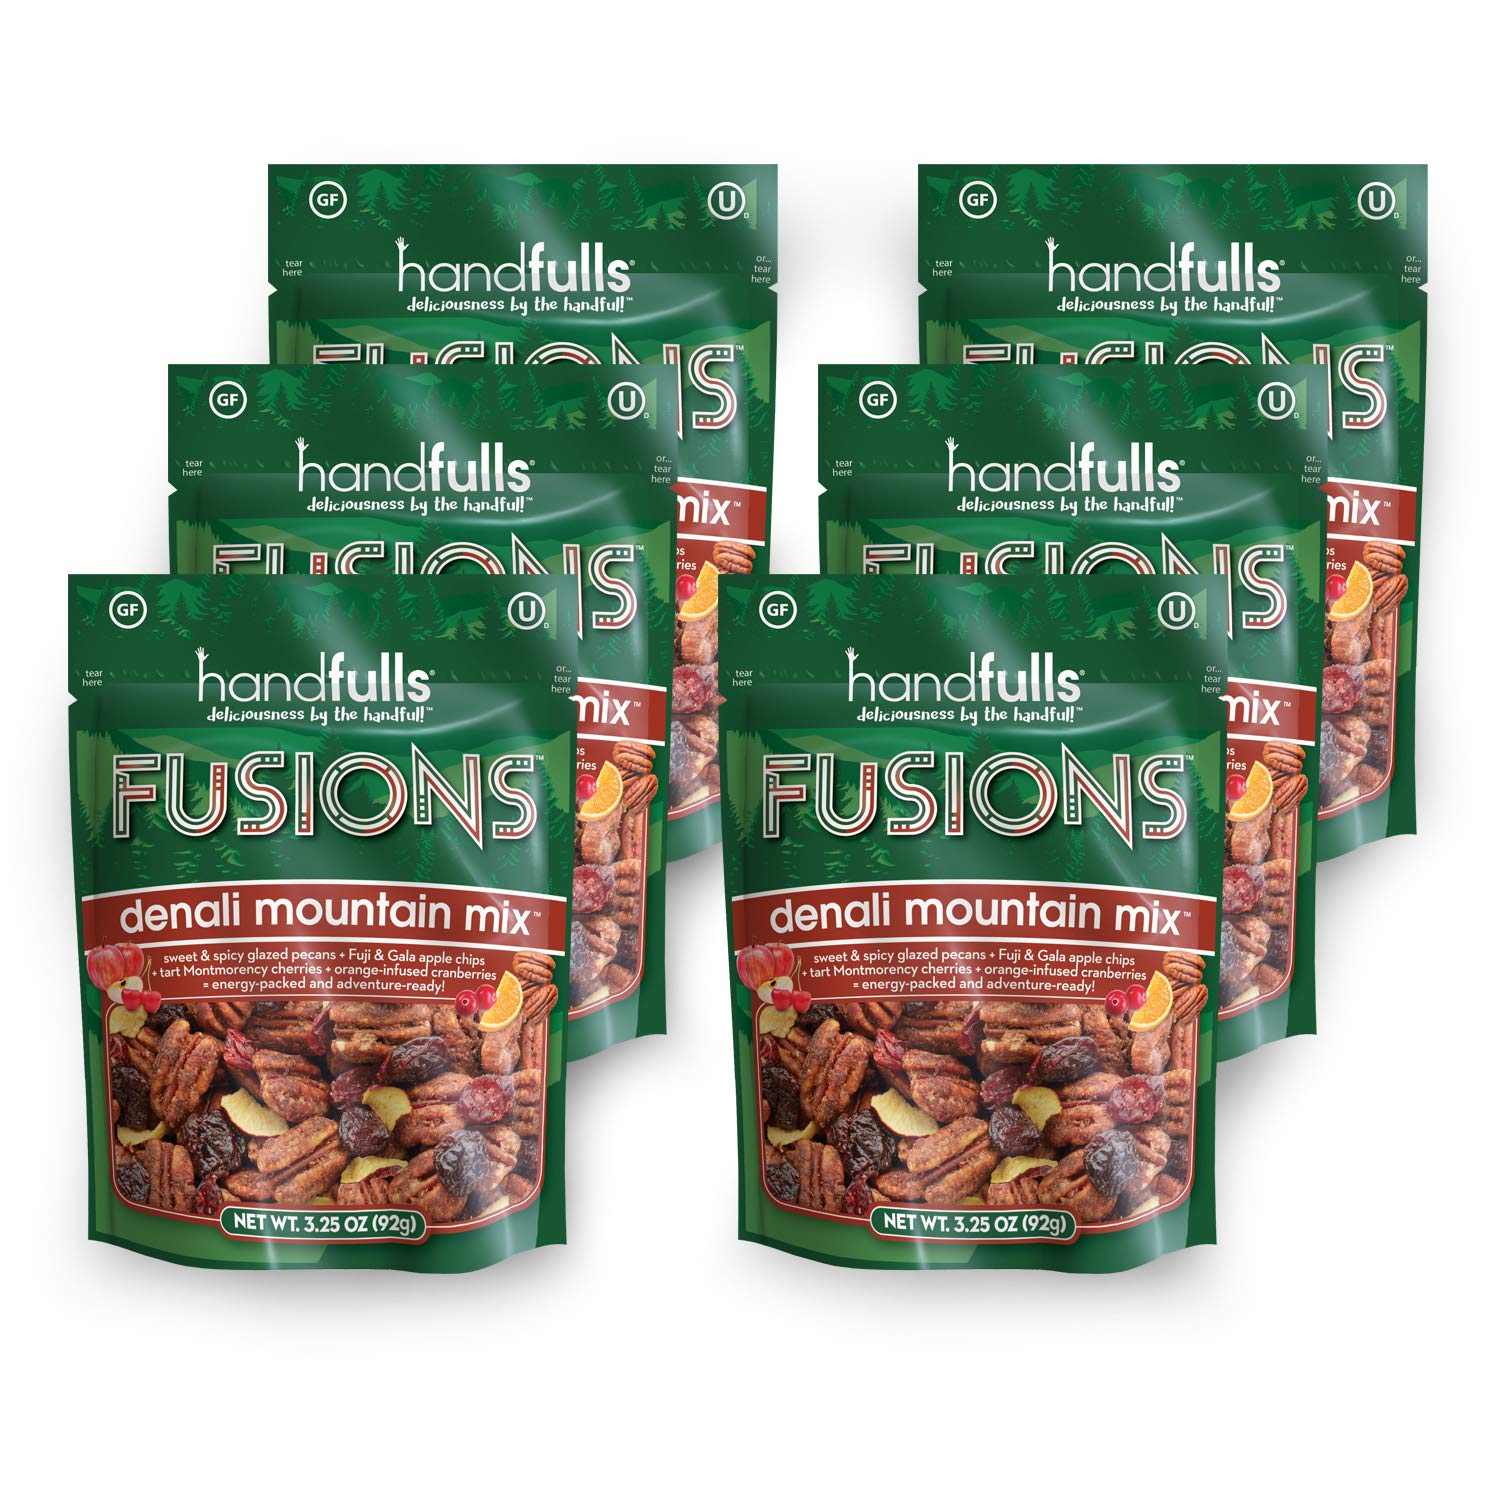 Fusions Denali Mountain Mix (6-Pack) Salty & Sweet Trail Mix by Handfulls. Glazed pecans, apple chips, cherries & cranberries. Gluten-free, Non-GMO, OU Kosher, Vegetarian (3.25 oz bags) by Handfulls